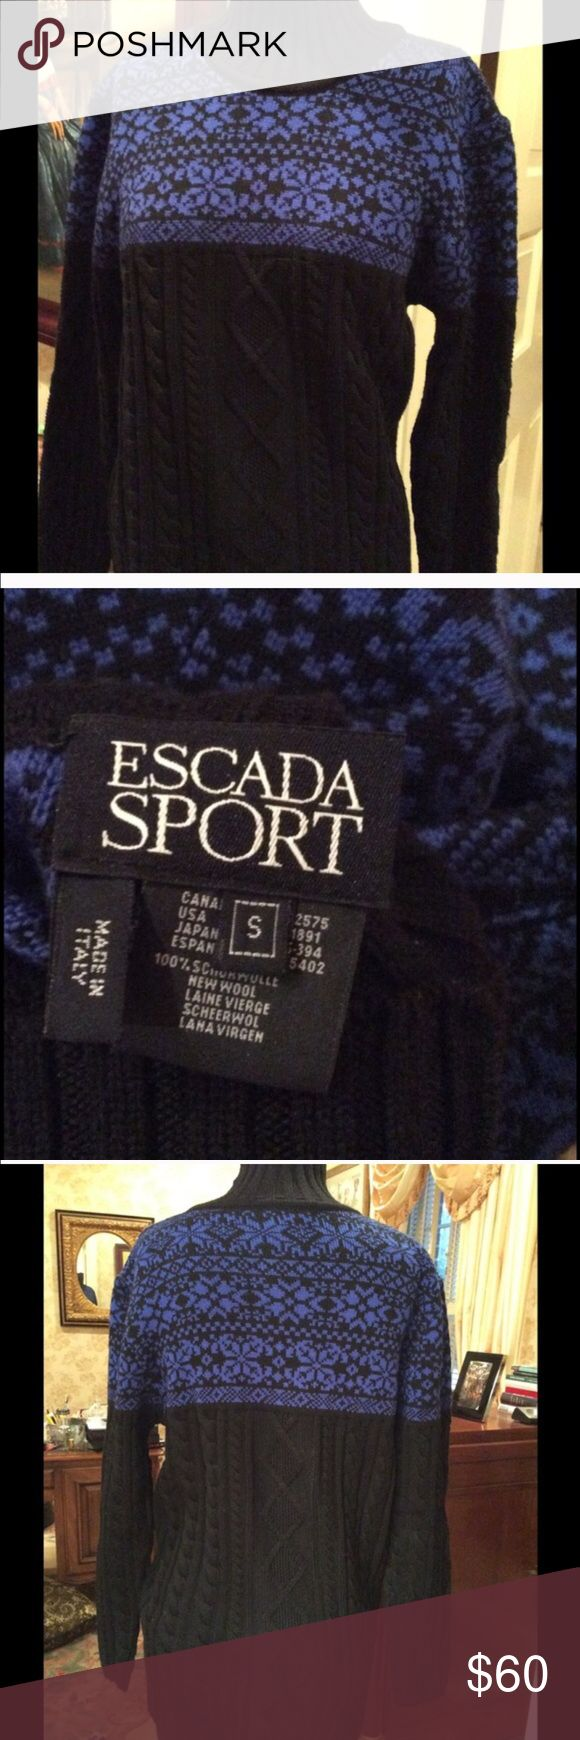 """Escada Sport Wool Sweater excellent condition Beautiful wool sweater blue and black size S. very soft wool made in Italy 🇮🇹.  Size 26"""" length and 36"""" chest and 46"""" hips Escada Sweaters Cowl & Turtlenecks"""